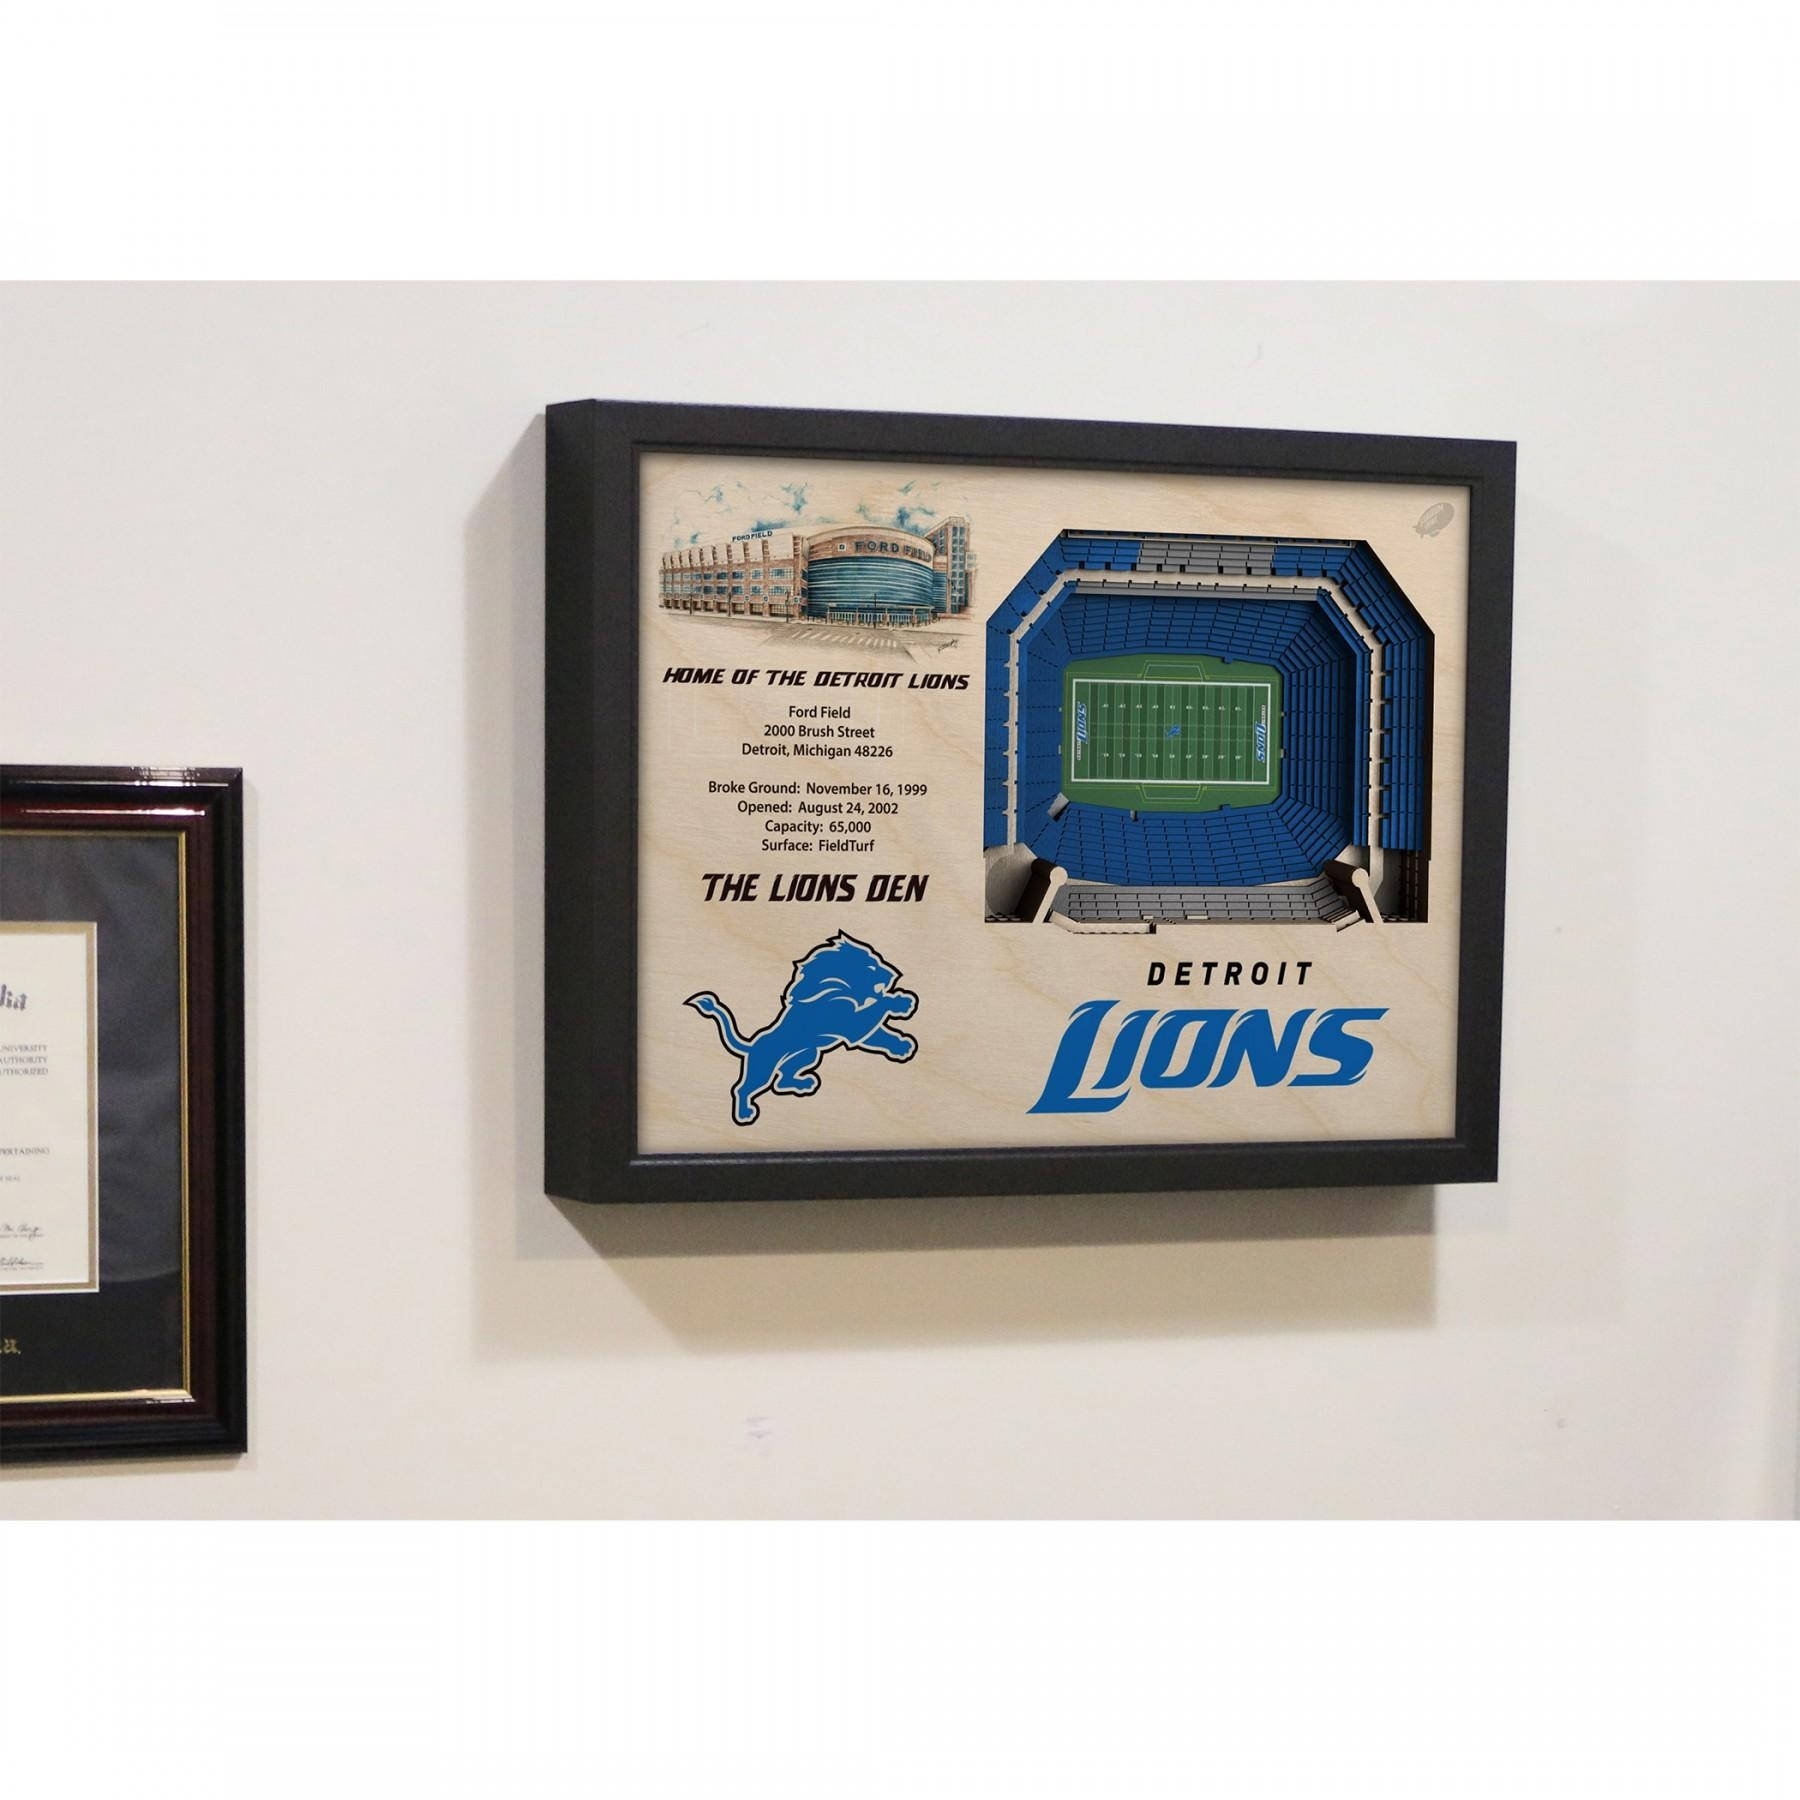 Detroit Lions Stadiumview Wall Art – Ford Field 3 D Reproduction With Regard To Red Sox Wall Art (Image 13 of 20)